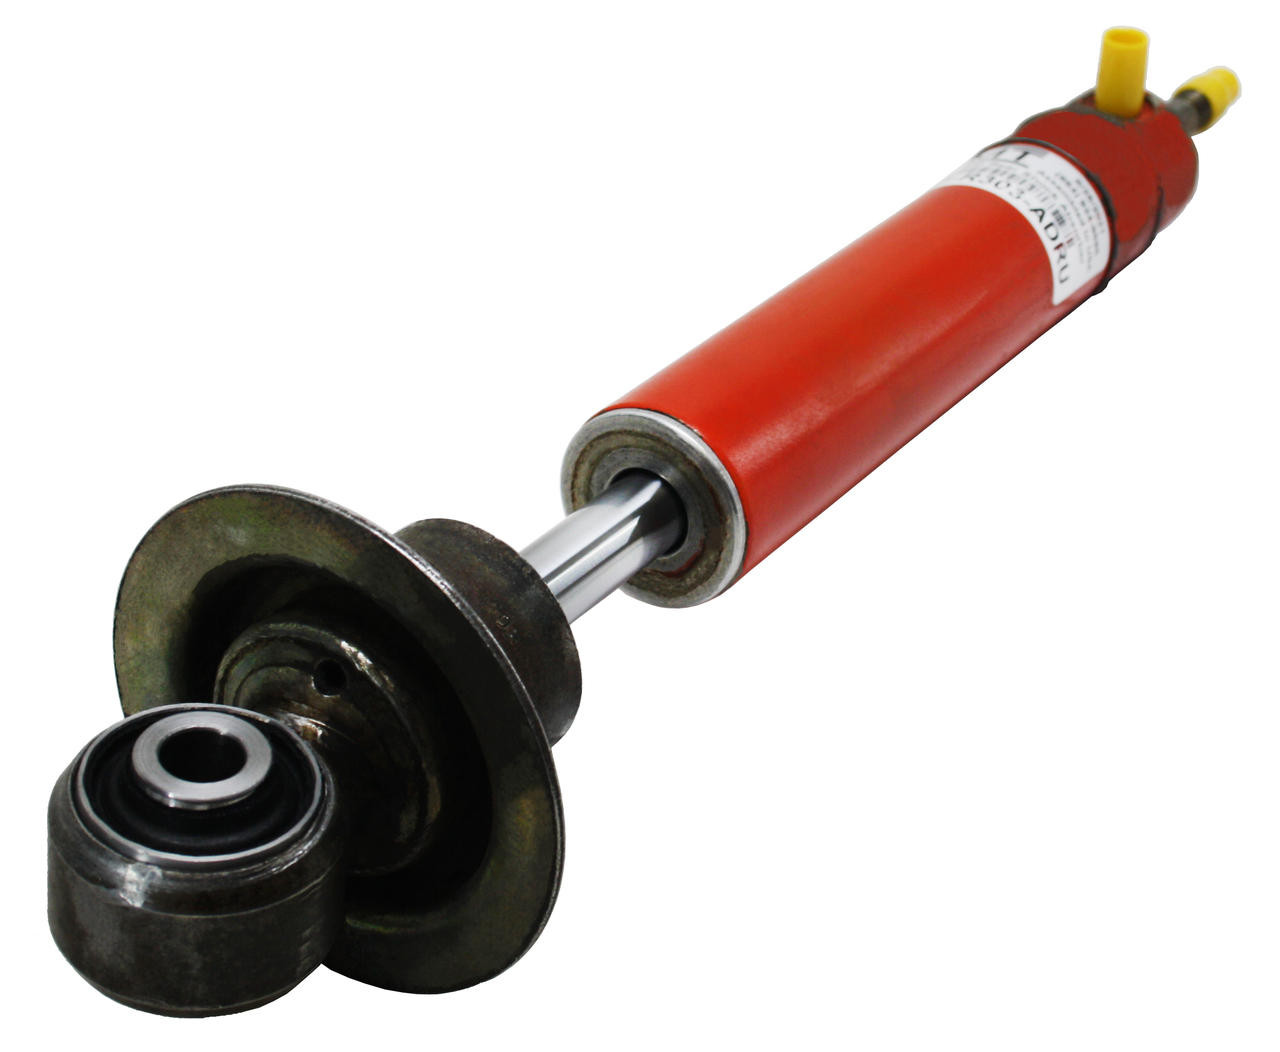 RMT Suspension Products Ferrari 400i 1979-1985 OE Rebuilt Replacement Rear Shock Absorber 117722